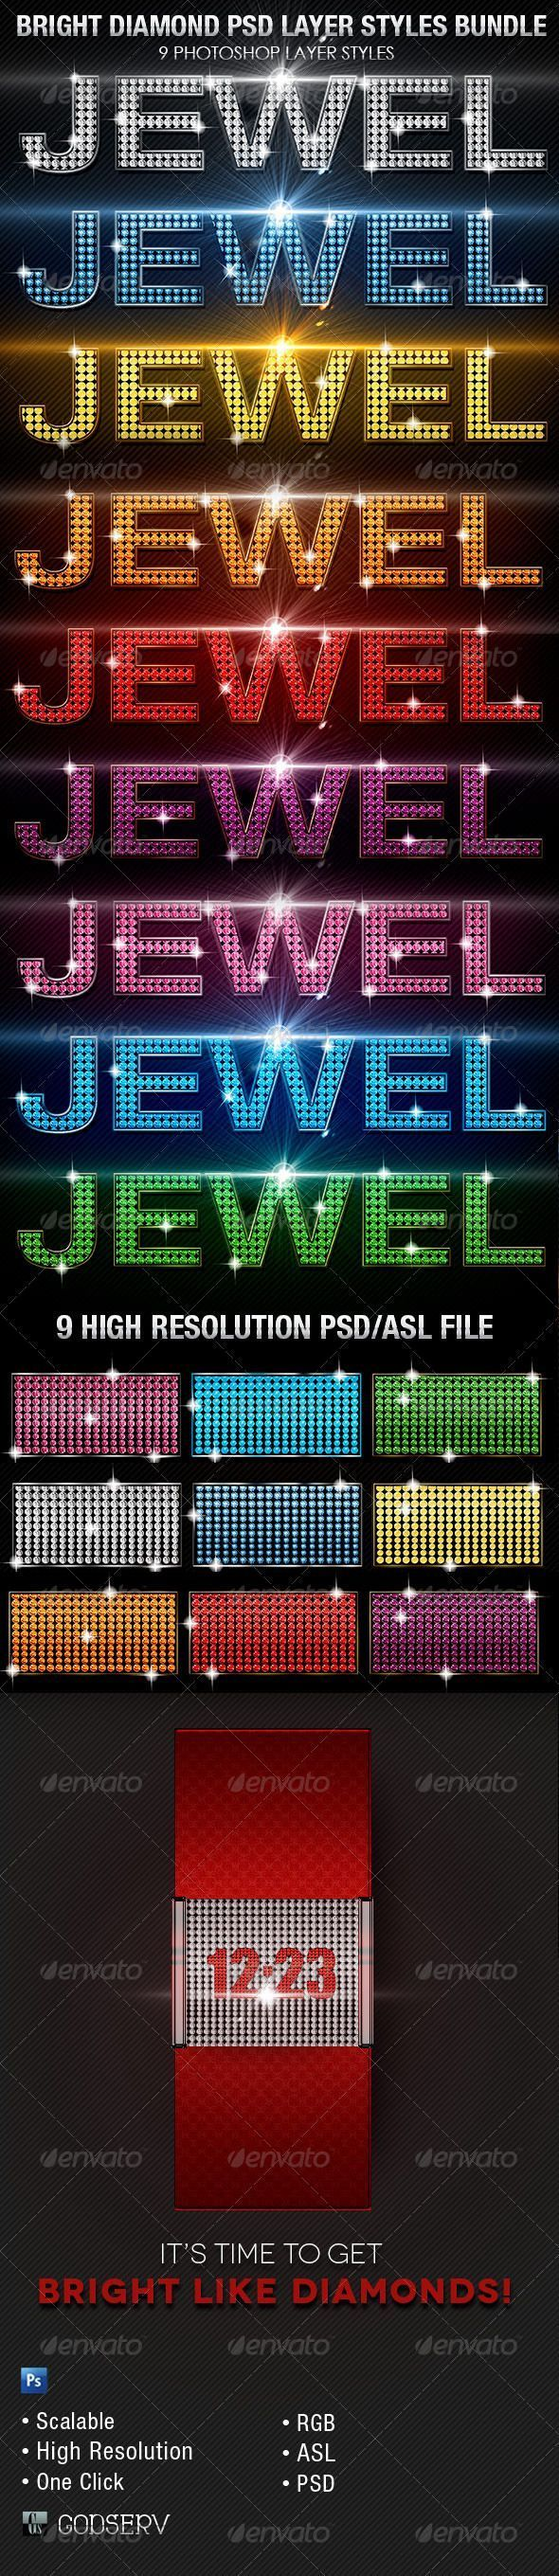 Bright Diamond Photoshop Layer Styles Bundle - $7.00 The Bright Diamond Photoshop Layer Styles Bundle is sold exclusively on graphicriver and can be used for variety of design projects, including Posters, Flyers, CD Artwork etc. Great for projects with a Club Theme, Bling Theme or Jewelry Theme. Have fun and be creative. Use one click to apply or copy the style from the provided psd file #howtoapplybling Bright Diamond Photoshop Layer Styles Bundle - $7.00 The Bright Diamond Photoshop Layer Styl #howtoapplybling